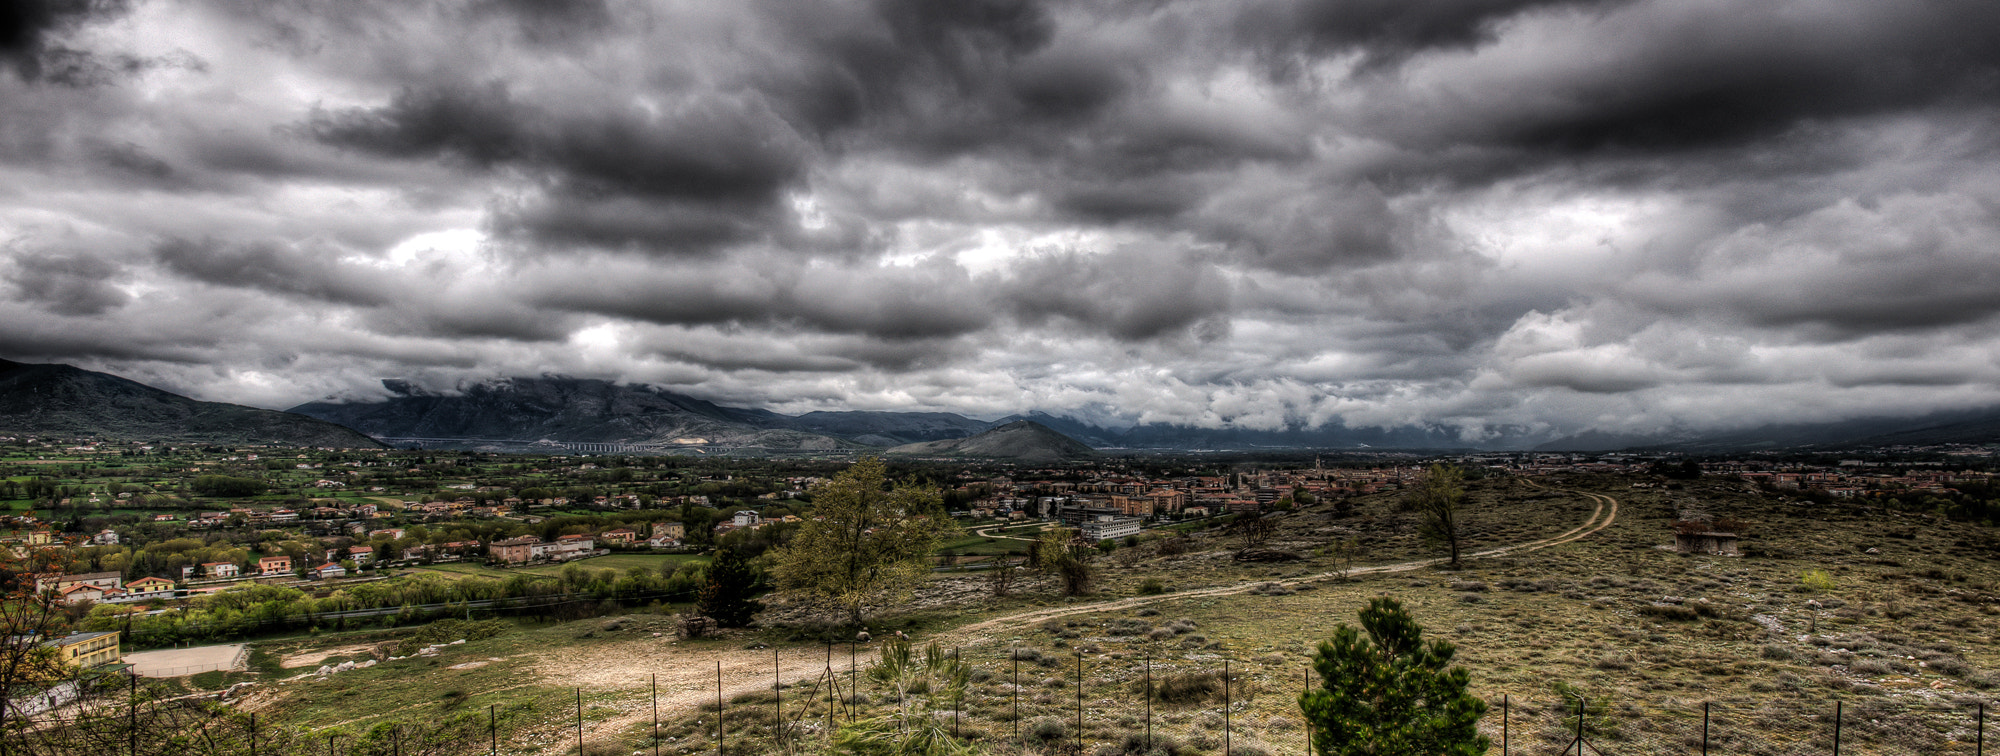 Photograph sulmona before the rain by Davide Romanelli on 500px